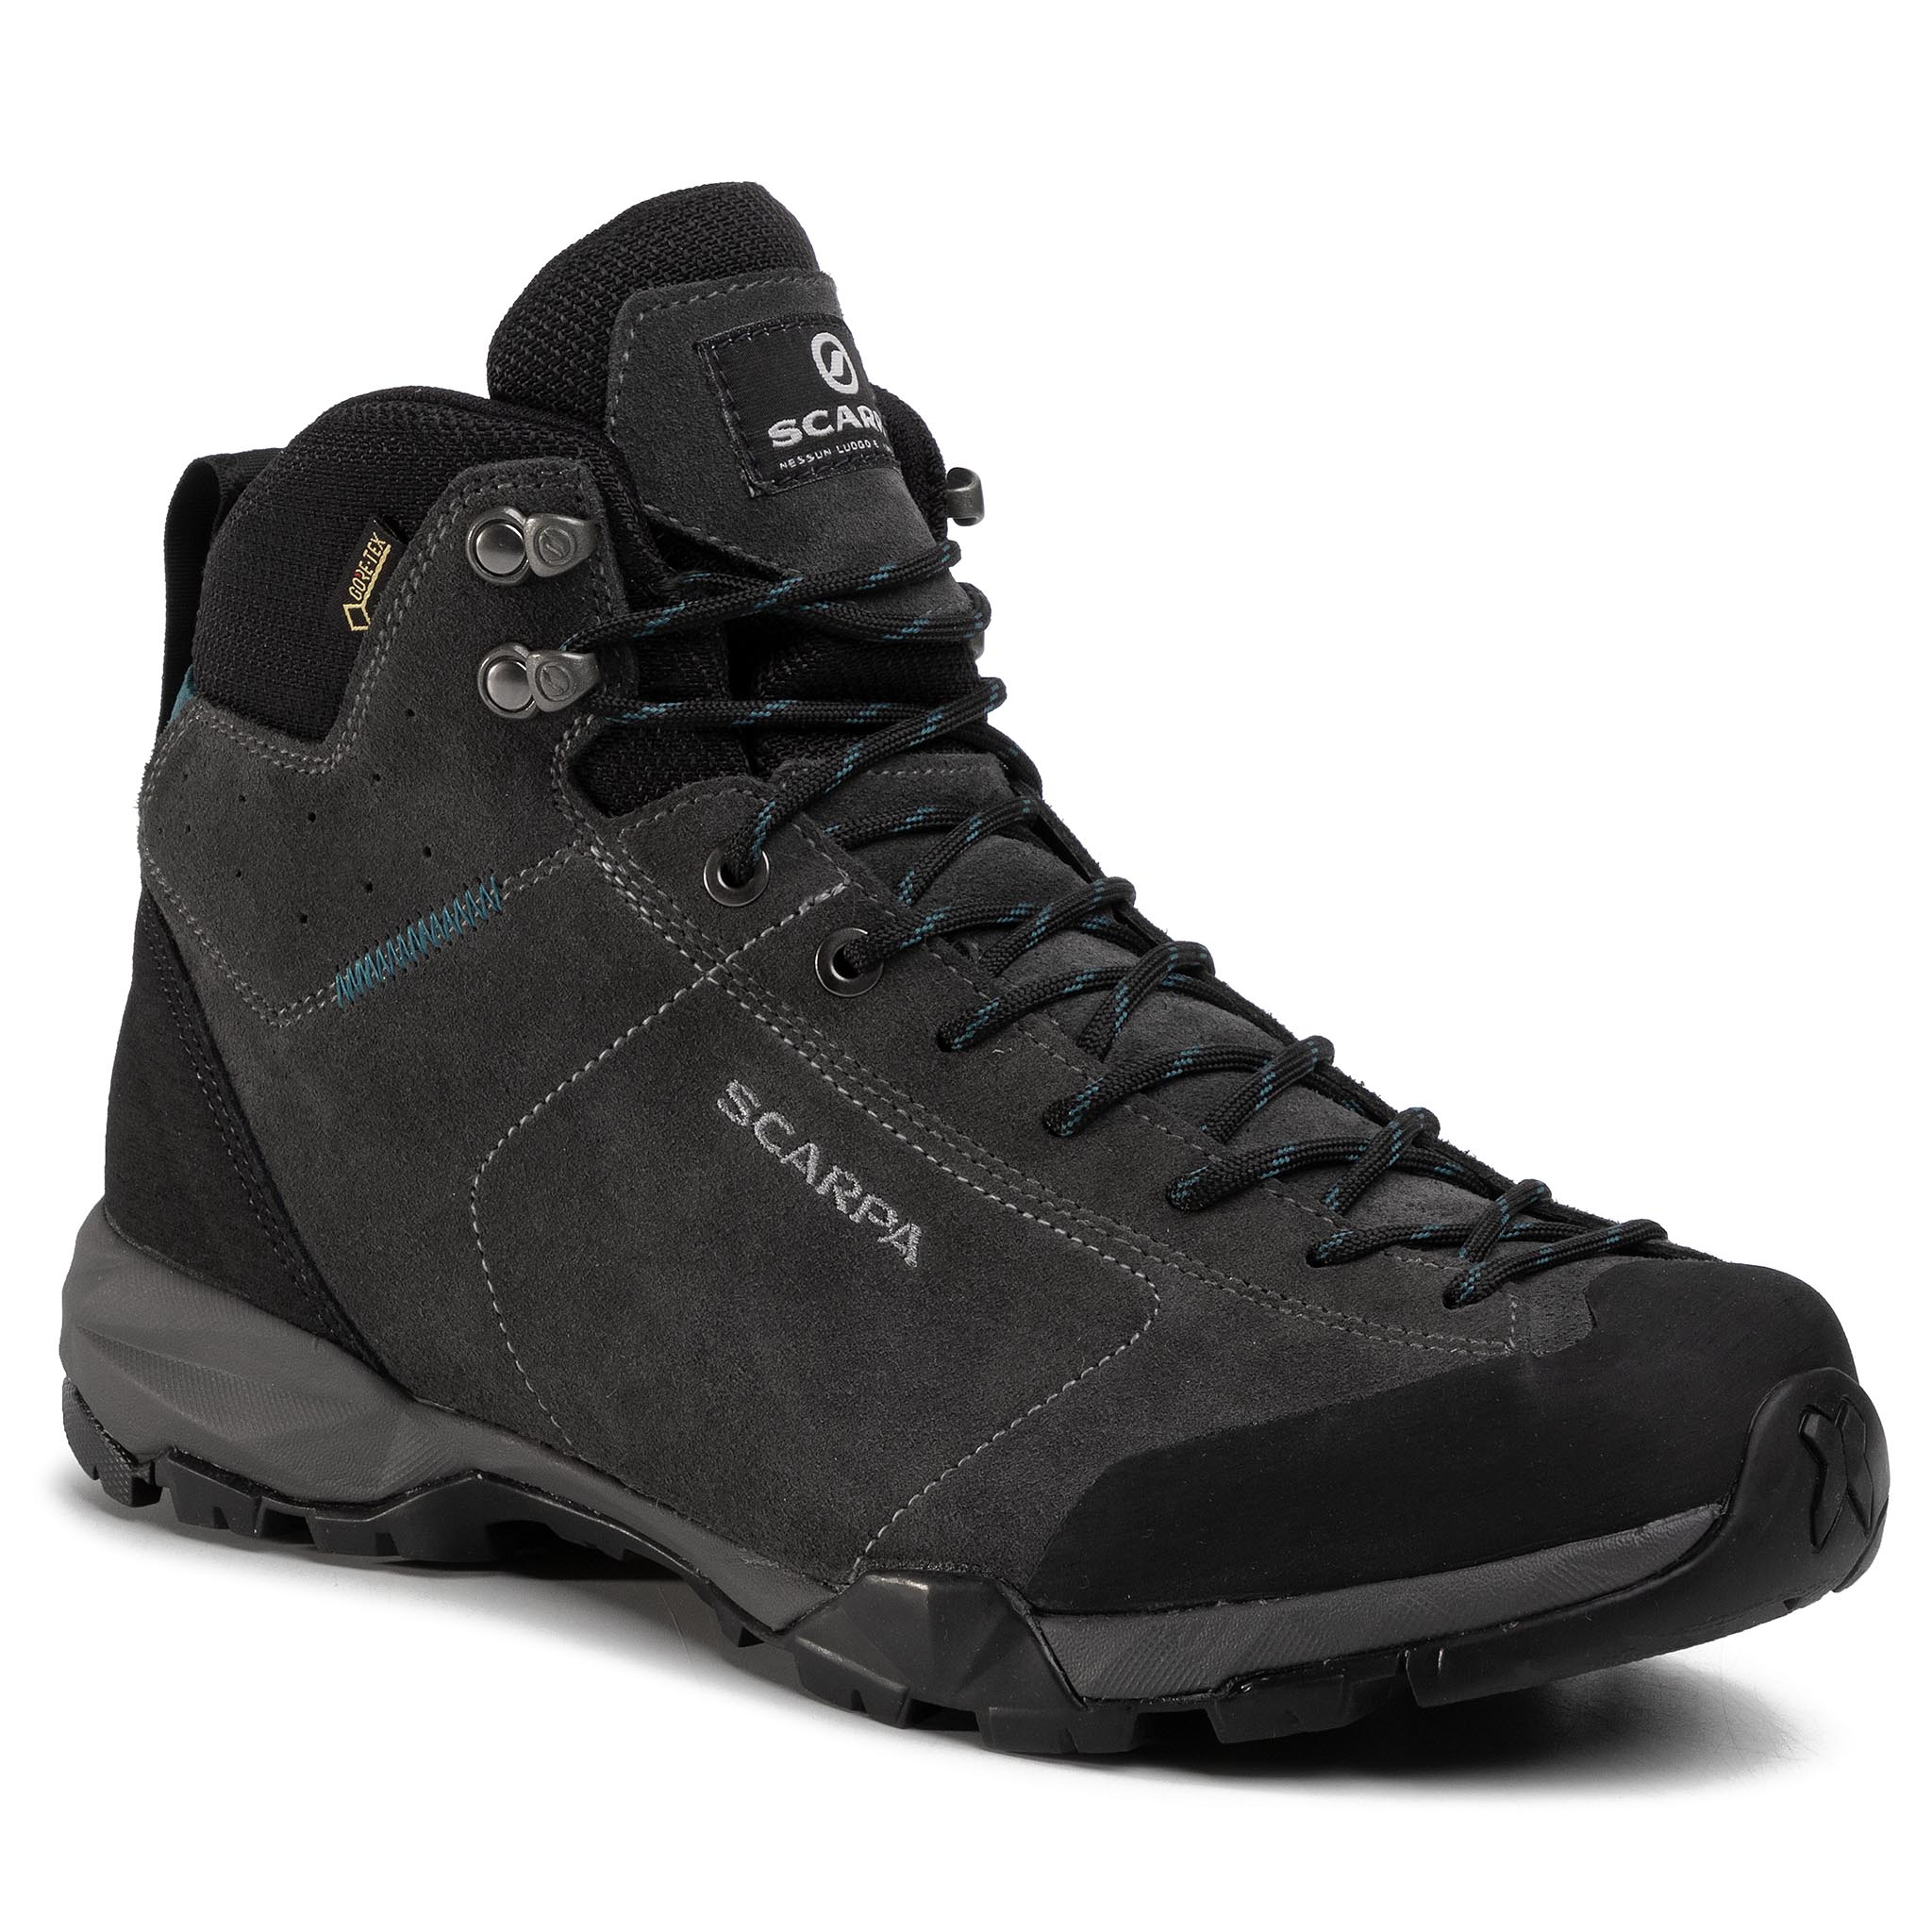 Trekkings Scarpa - Mojito Hike Gtx Gore-Tex 63311-200 Shark/Lake Blue imagine epantofi.ro 2021